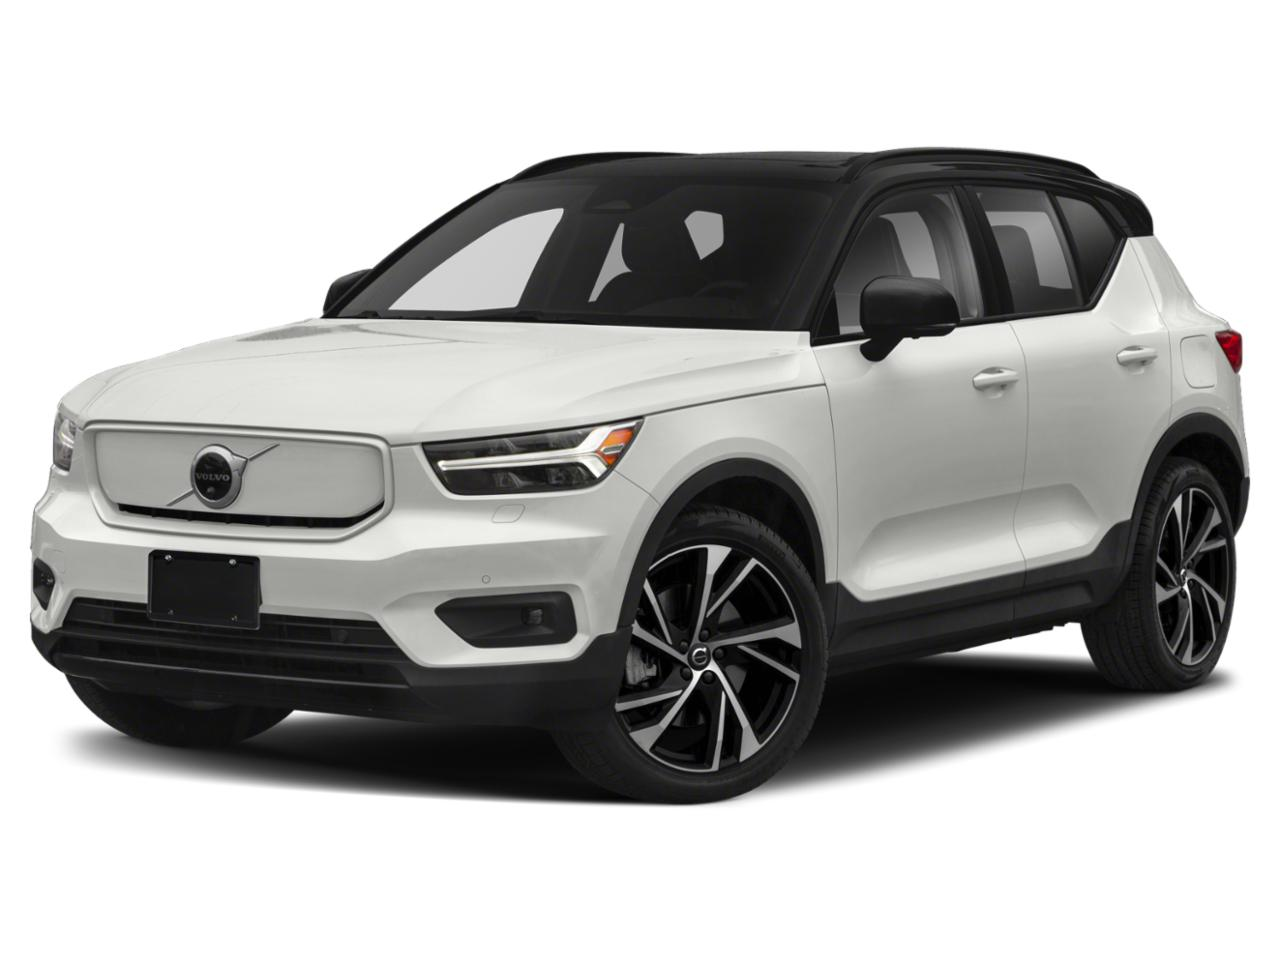 2022 Volvo XC40 Recharge Pure Electric Vehicle Photo in Grapevine, TX 76051